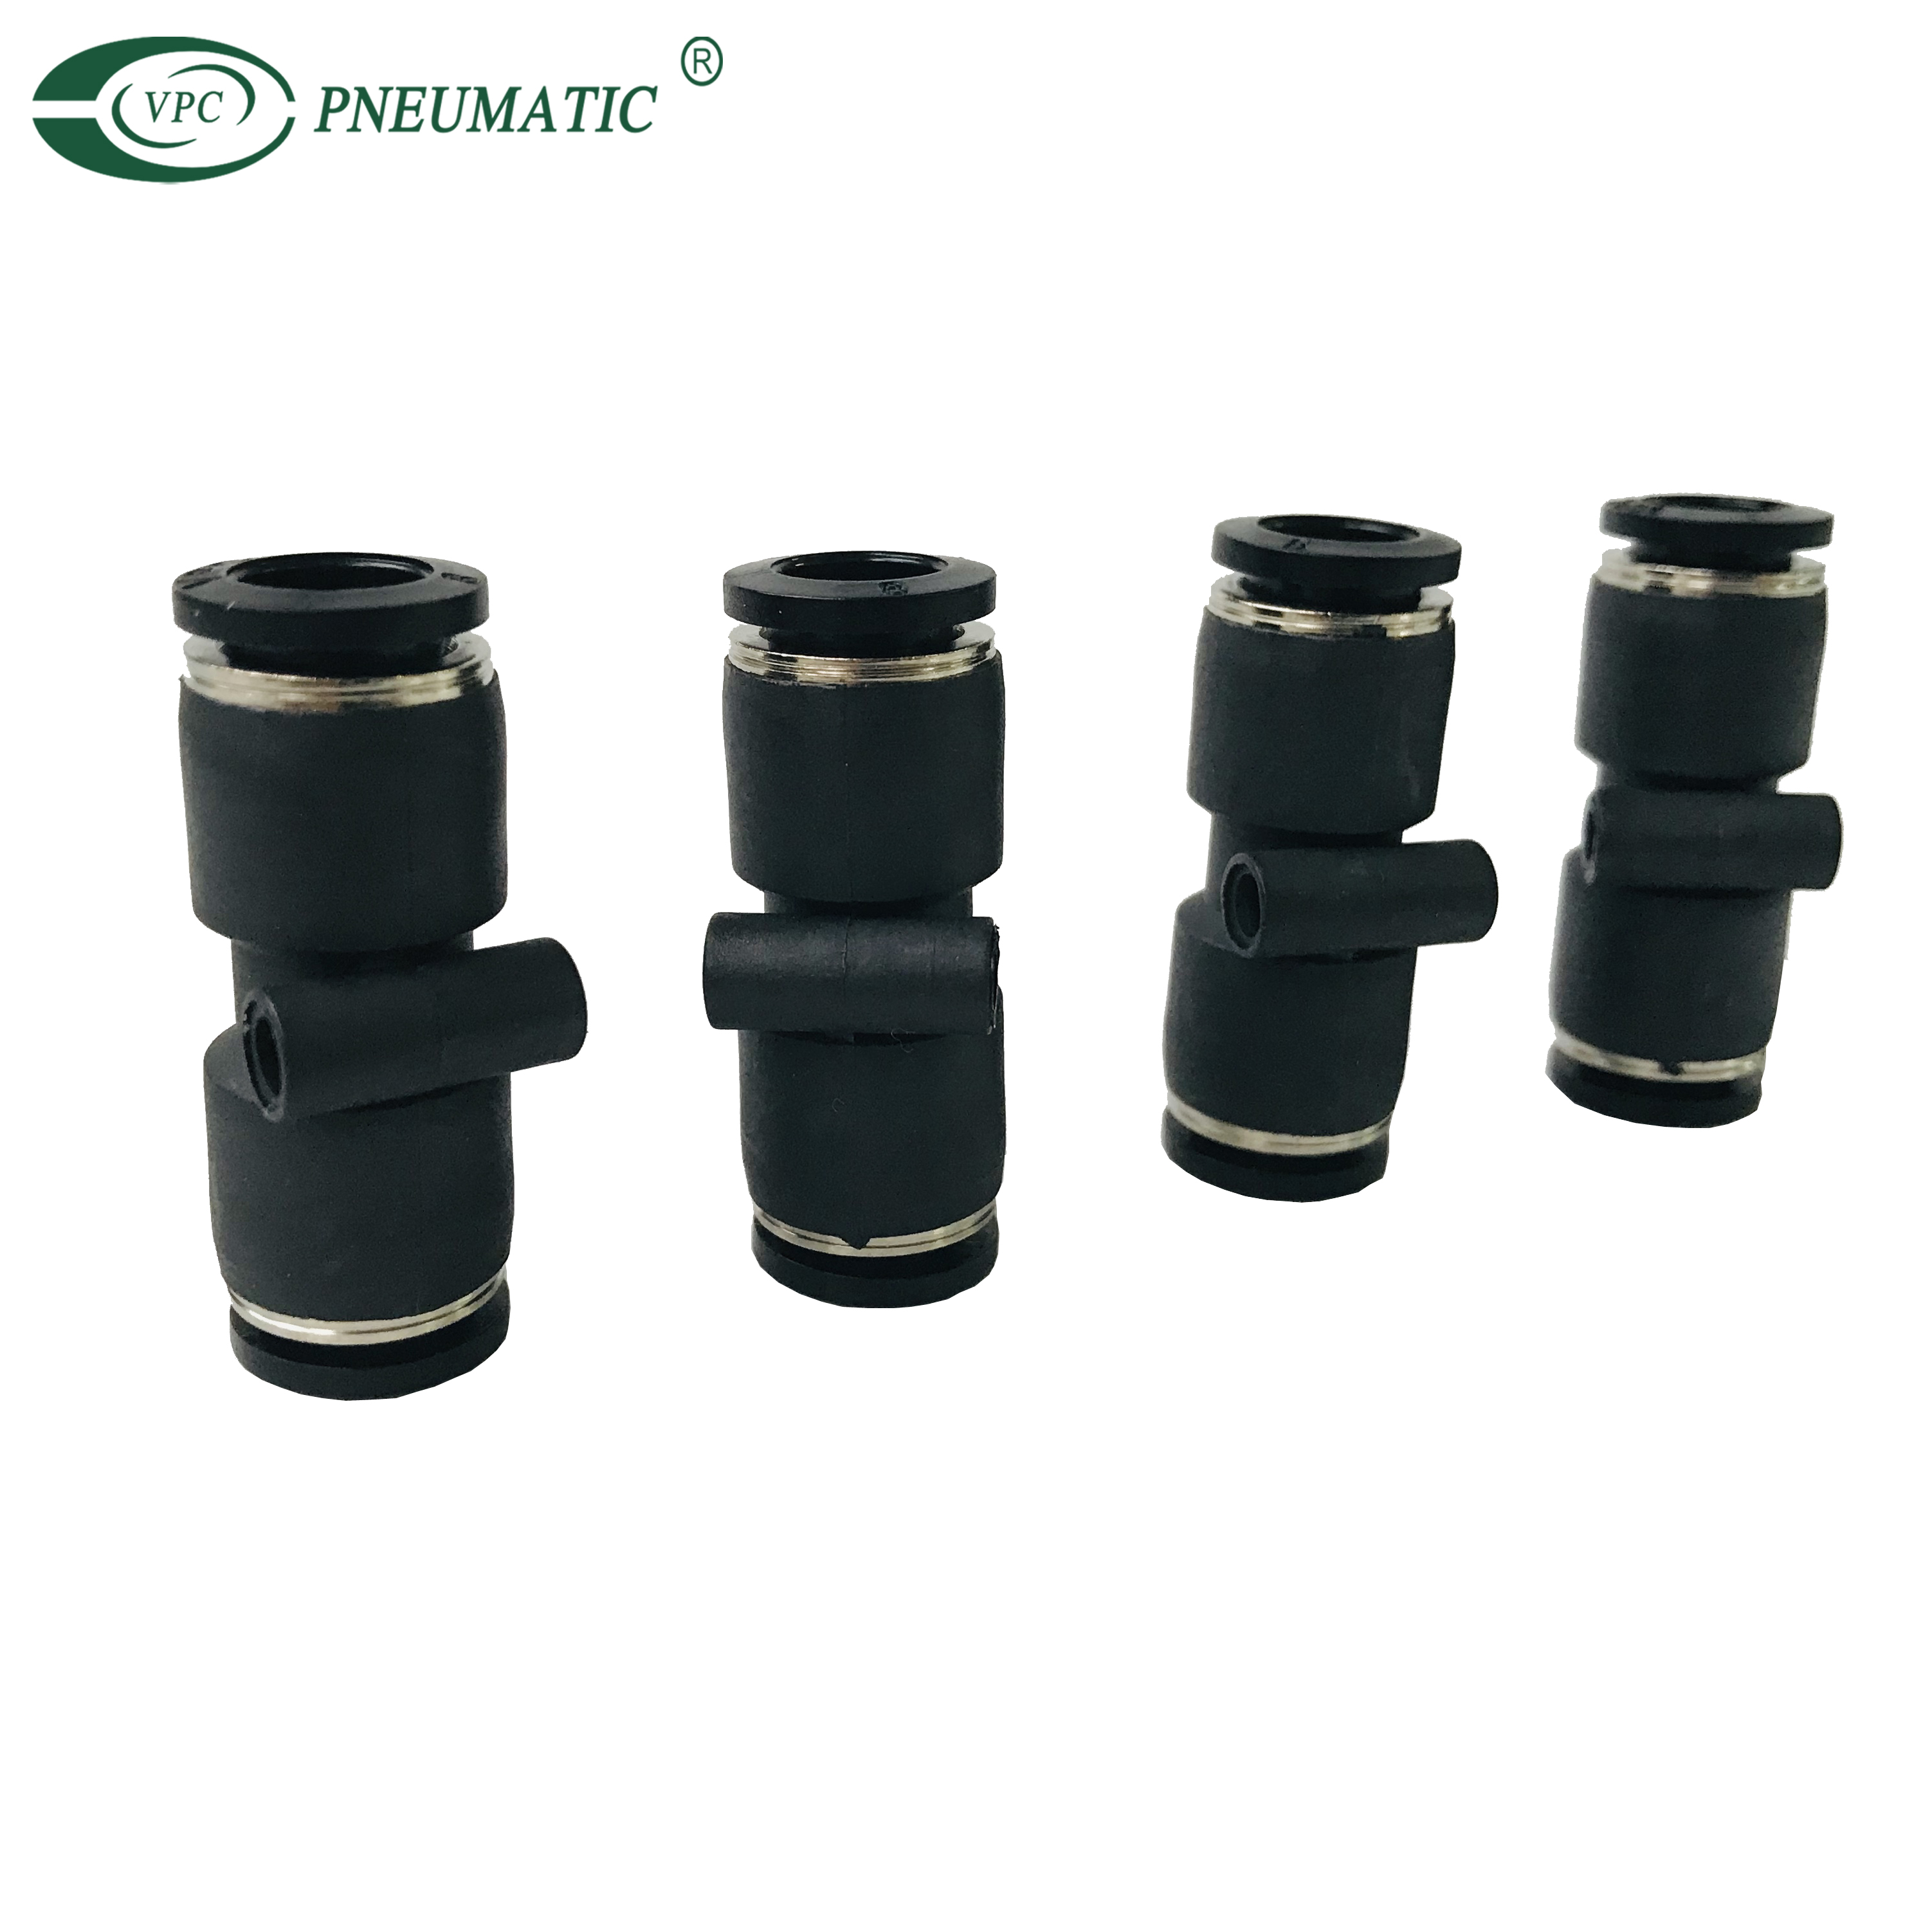 "Pl Male Elbow 6mm 1/8"" Pneumatic Ai tube fitting"